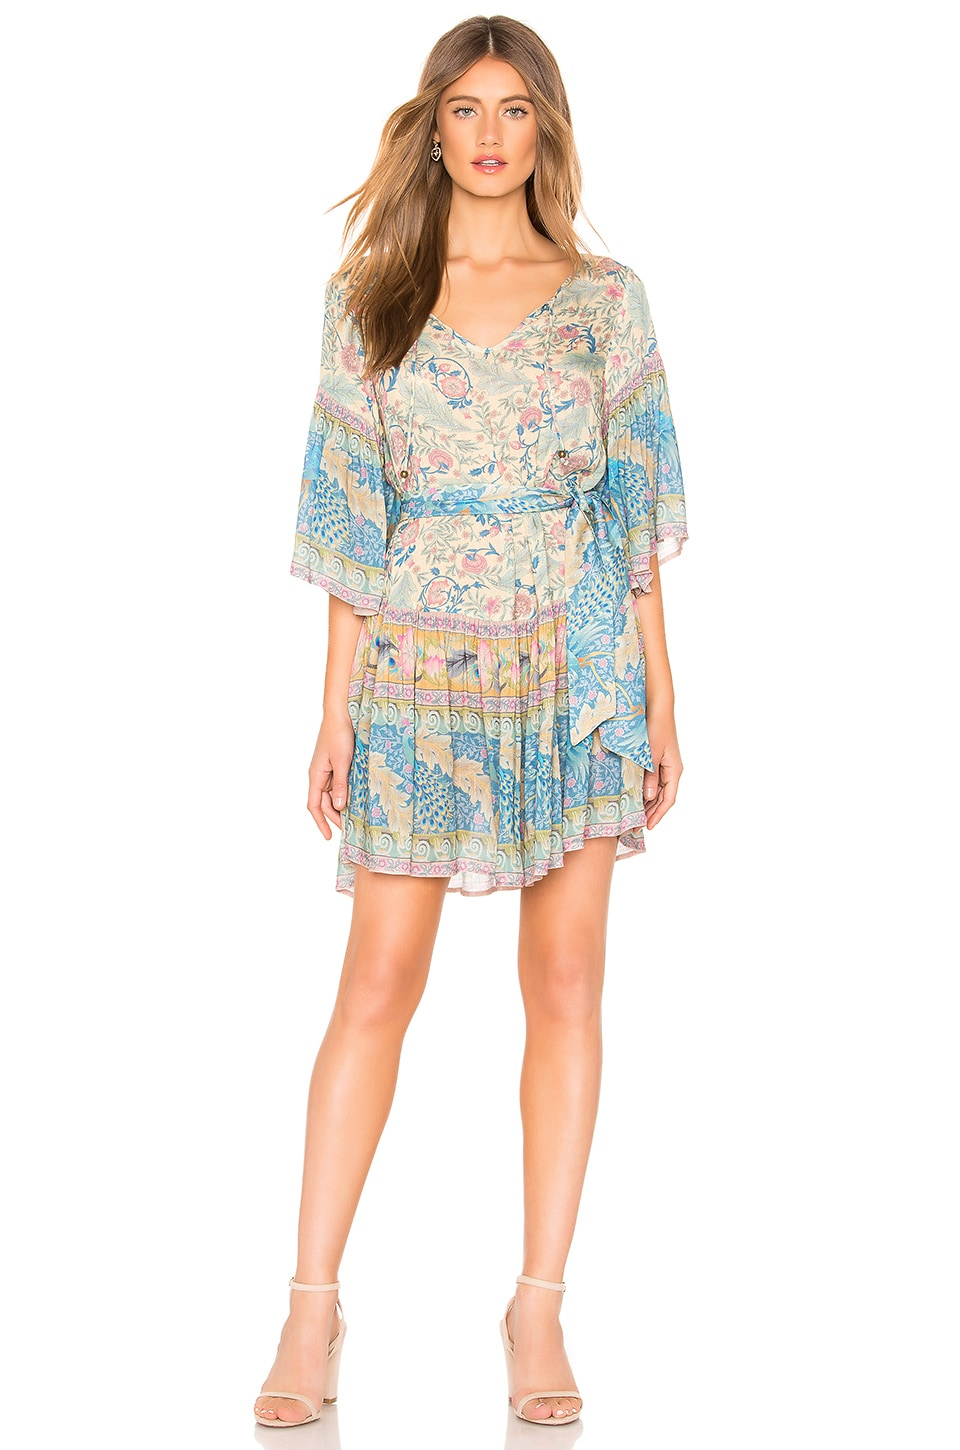 Spell & The Gypsy Collective Oasis Mini Dress in Opal